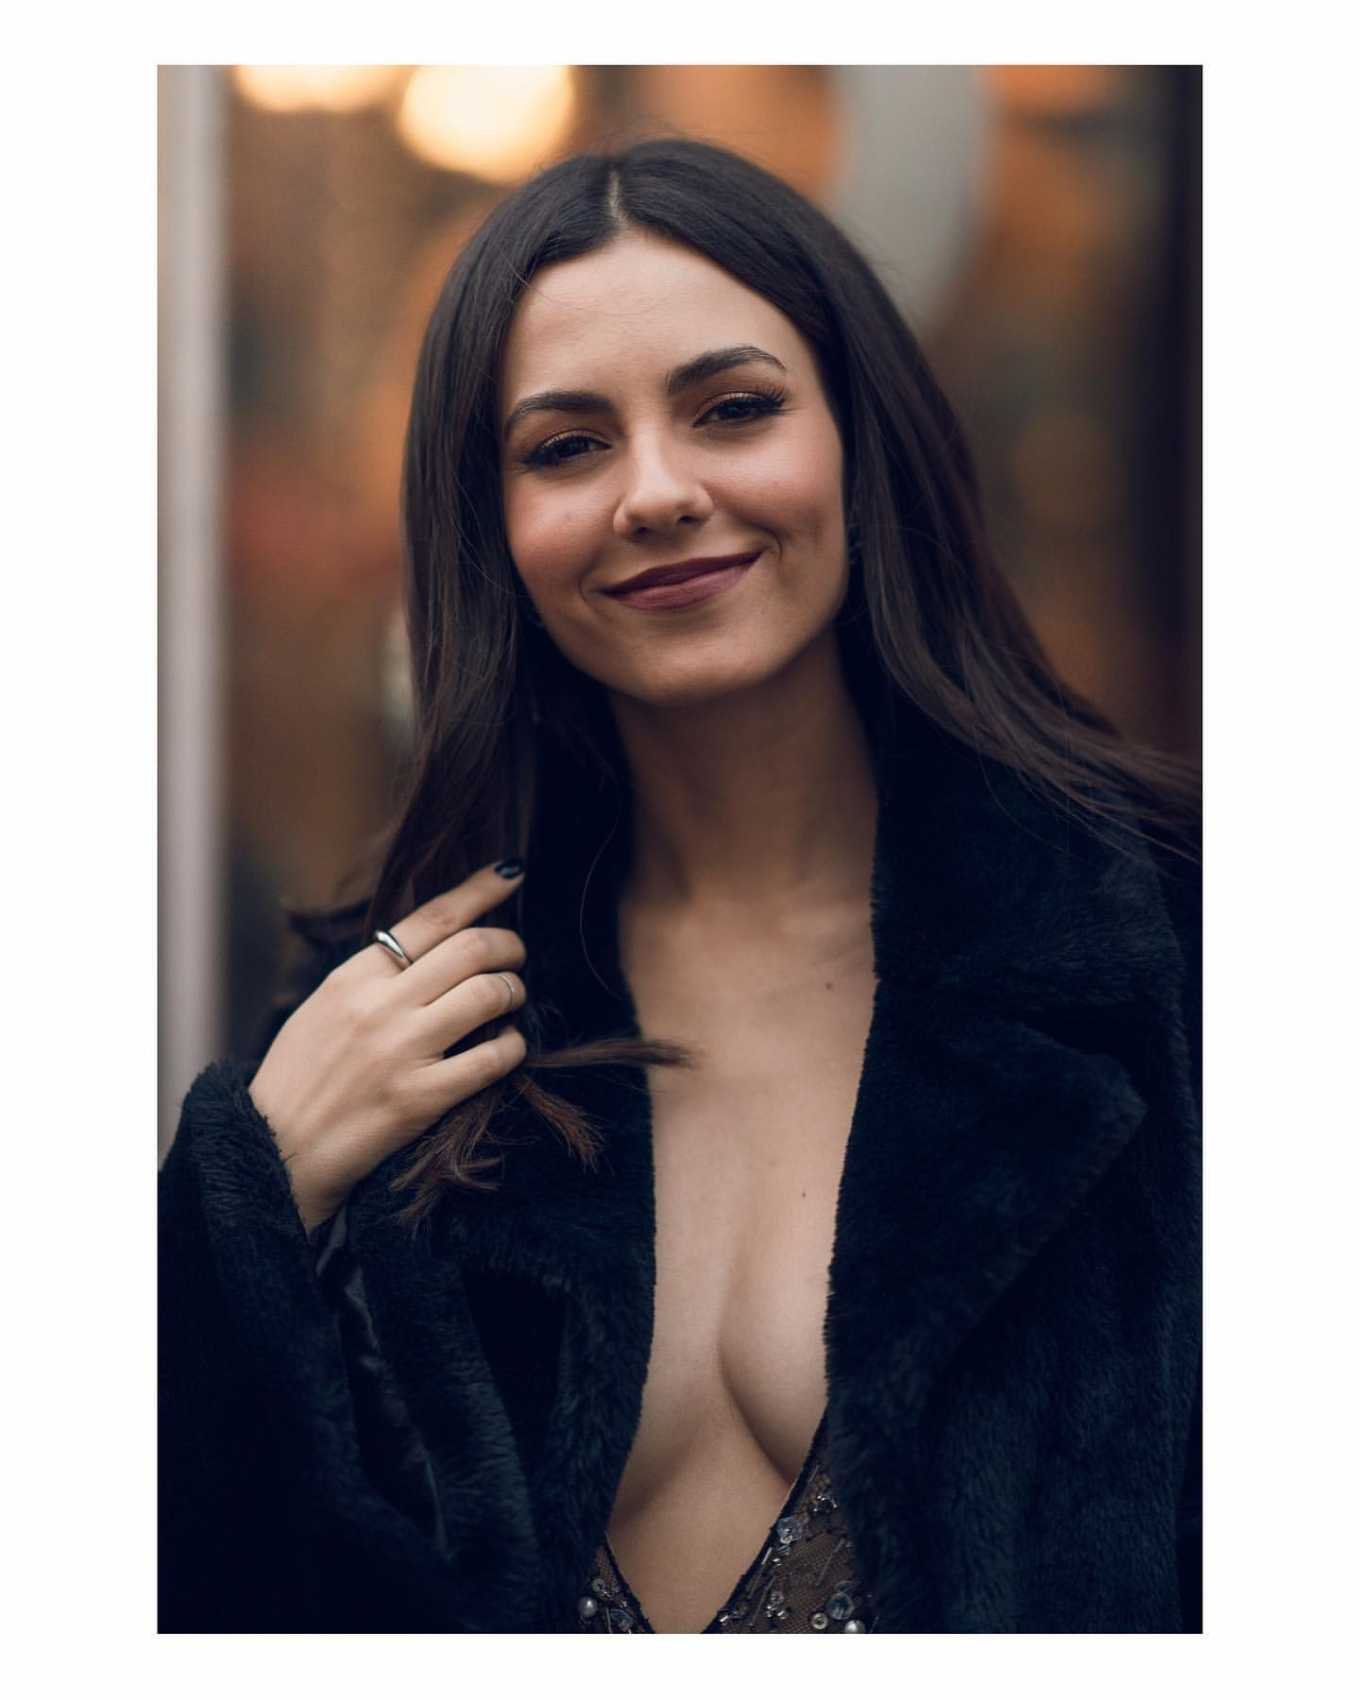 Victoria Justice - Chester Viloria photoshoot in New York (February 2020)